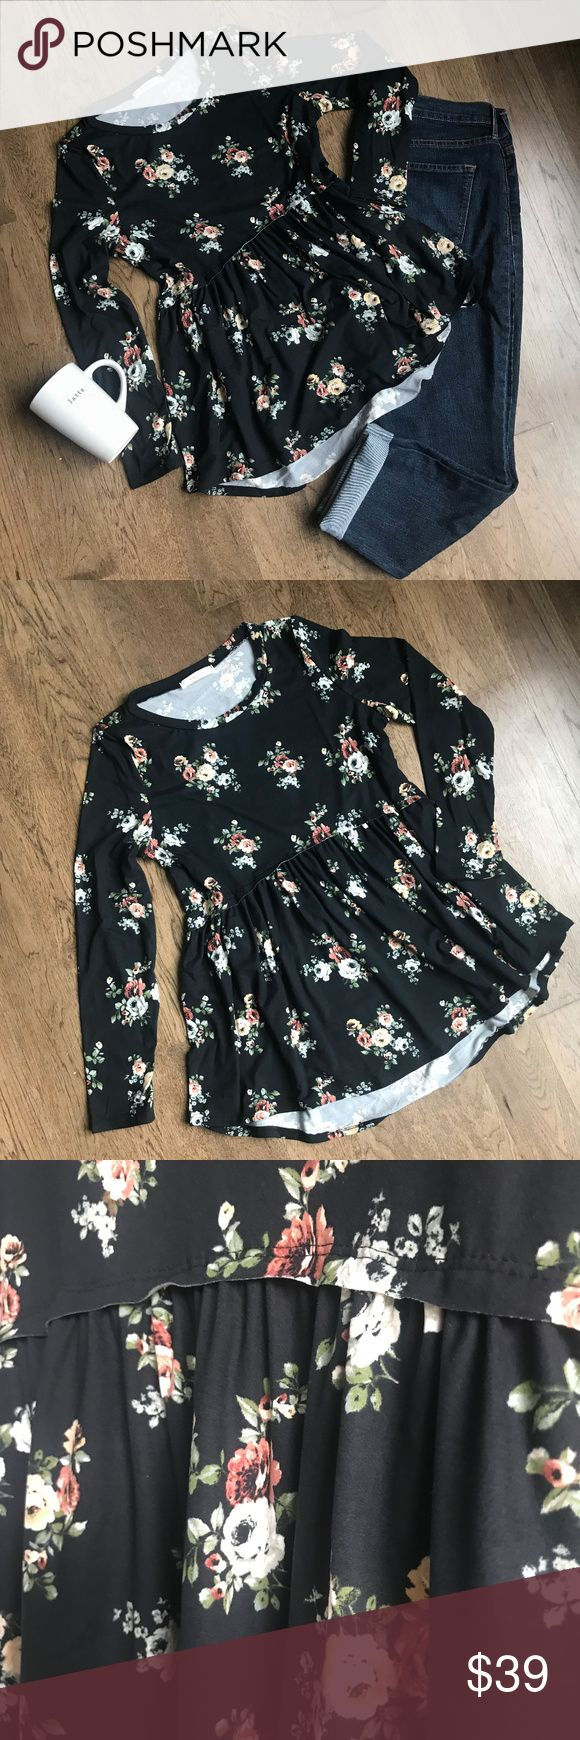 "NEW! Black Floral High/Low Long Sleeve Top New arrival! Floral print baby doll style top with a high/low hemline. Super soft, non-sheer, knit, lightweight. It is 98% polyester, 2% spandex, so it is flowy and there is some give!  Measurements: Length for all: Front ~28"" Back ~32"" Small (~2-4): Shoulders- ~14.5"", Bust- ~19"", Waist- ~19"", Hips- ~29"" Medium (~6-8): Shoulders- ~15.5"", Bust- ~20"", Waist- ~20"", Hips- ~30"" Large (~10-12): Shoulders- ~15.5"", Bust- ~20.5"", Waist- ~20.5"", Hips- ~31""…"